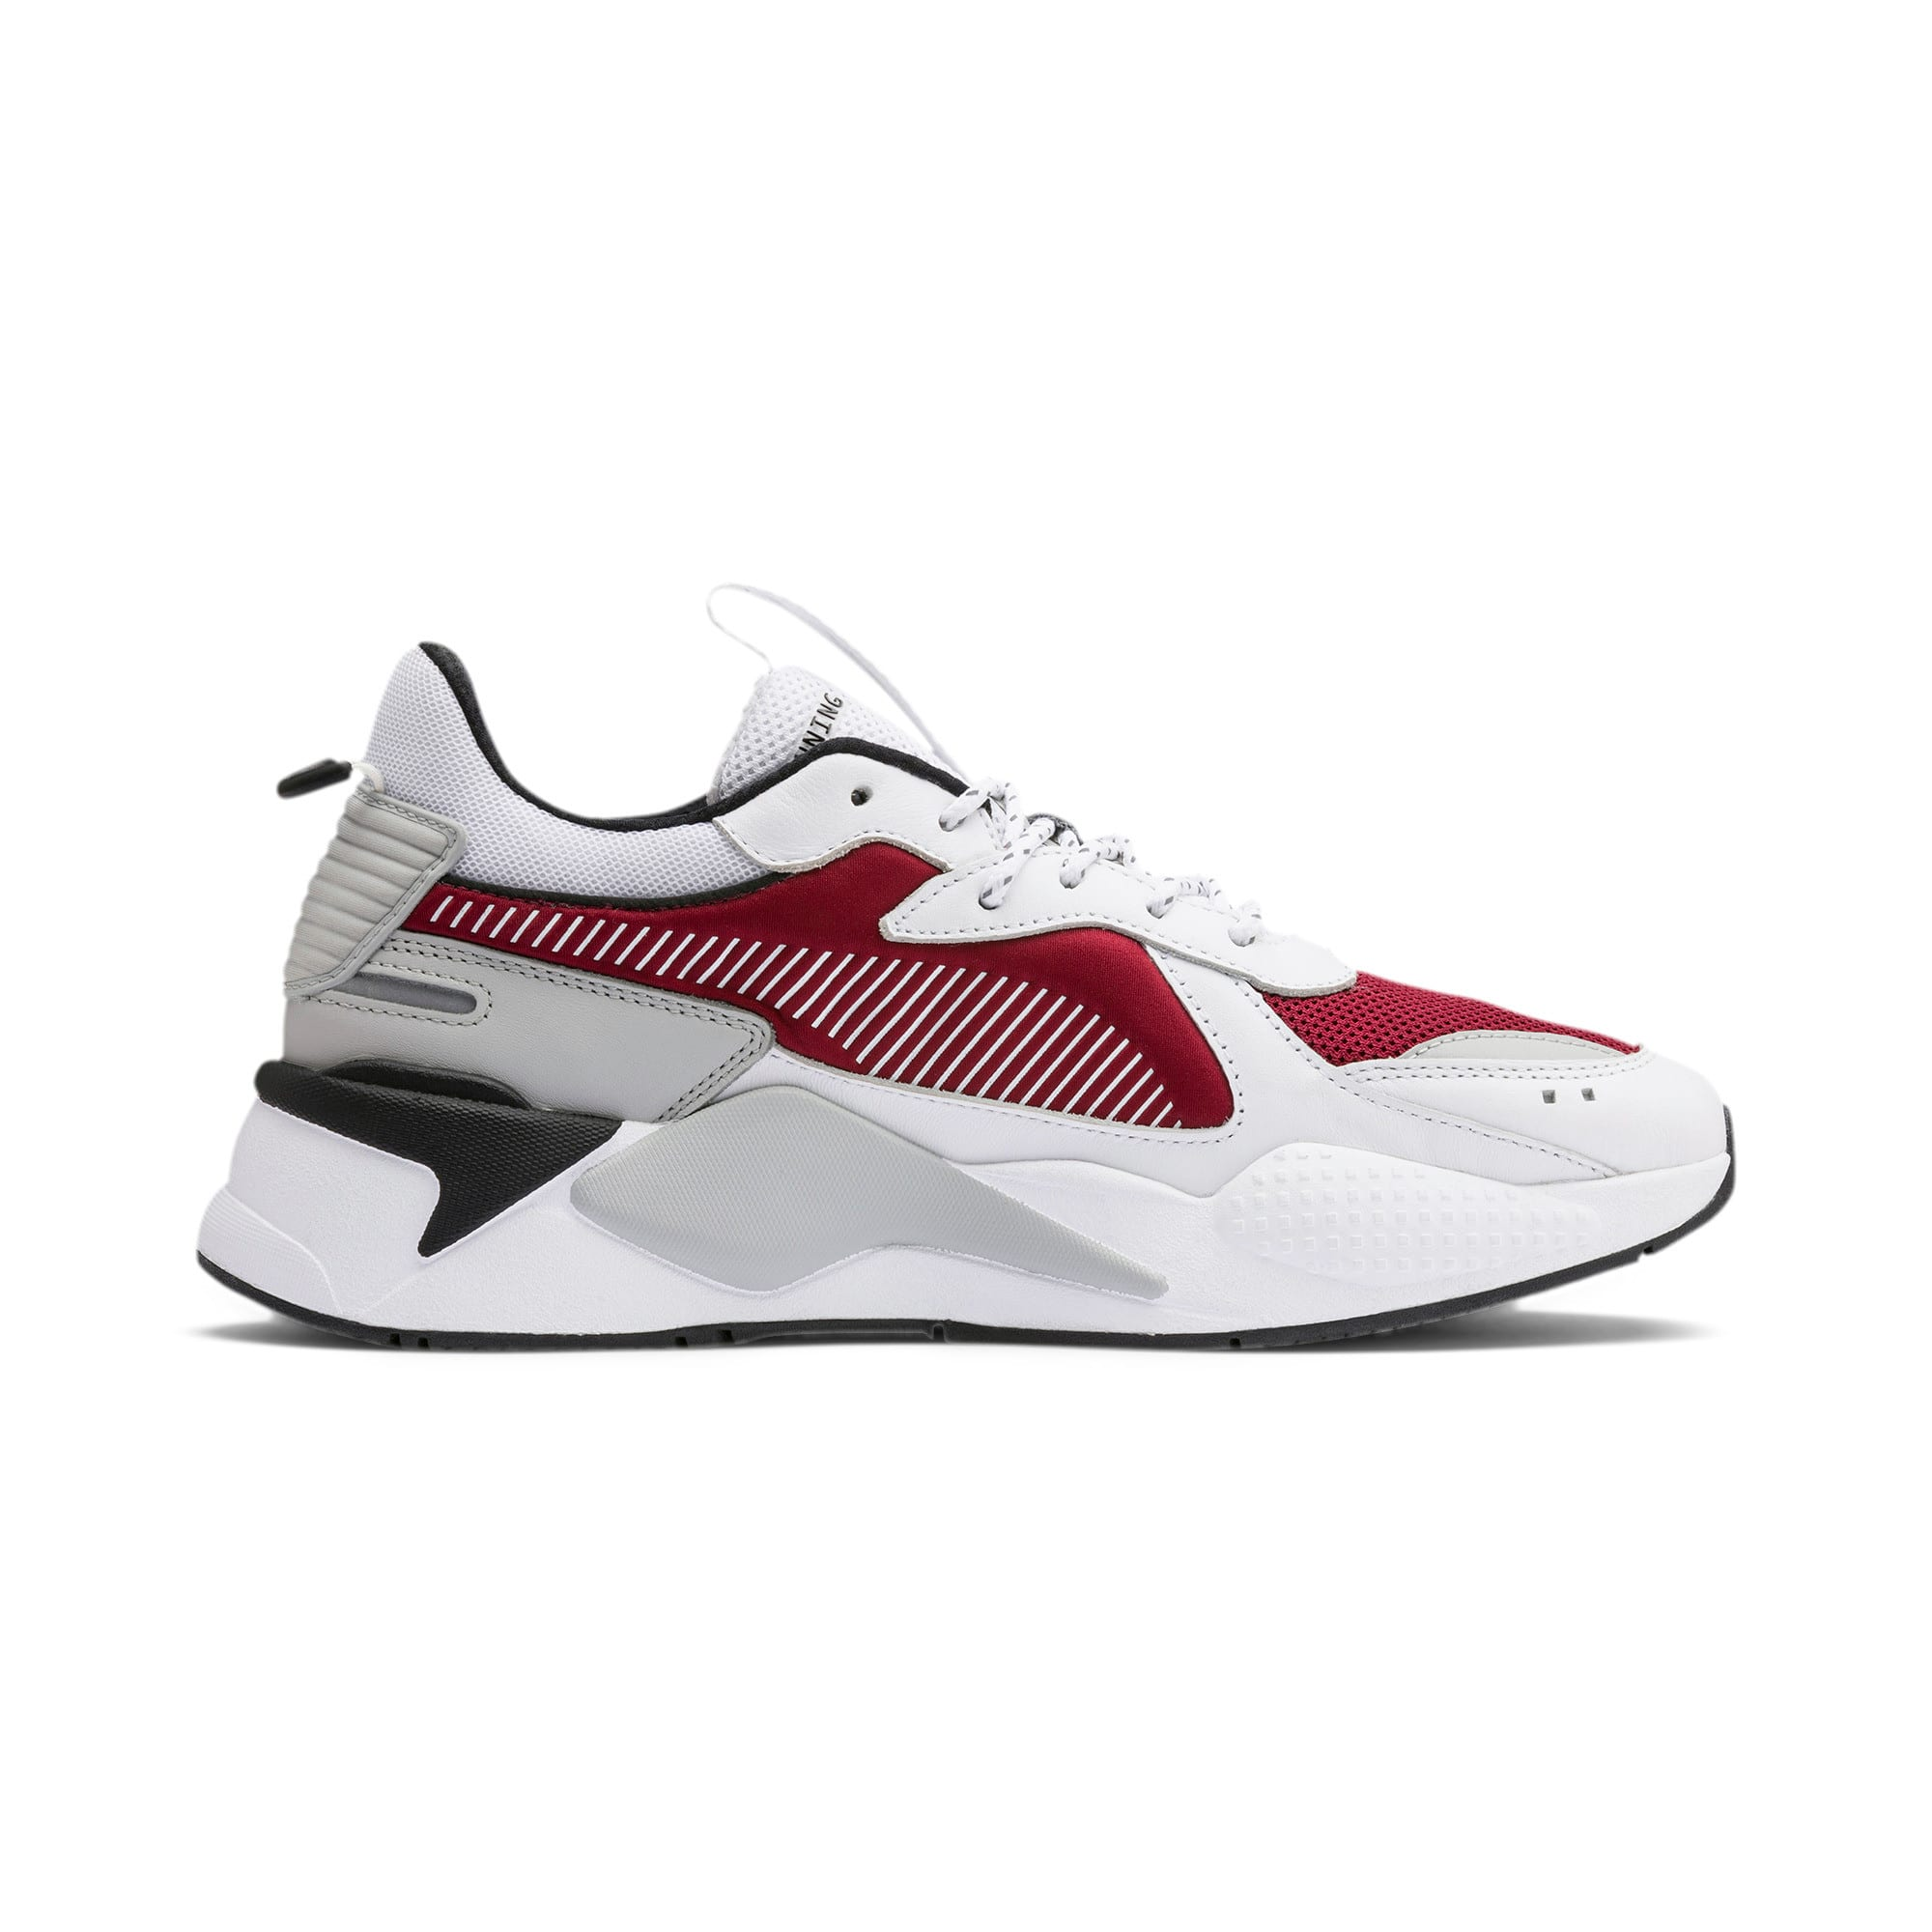 RS-X Trainers, Puma White-Rhubarb, large